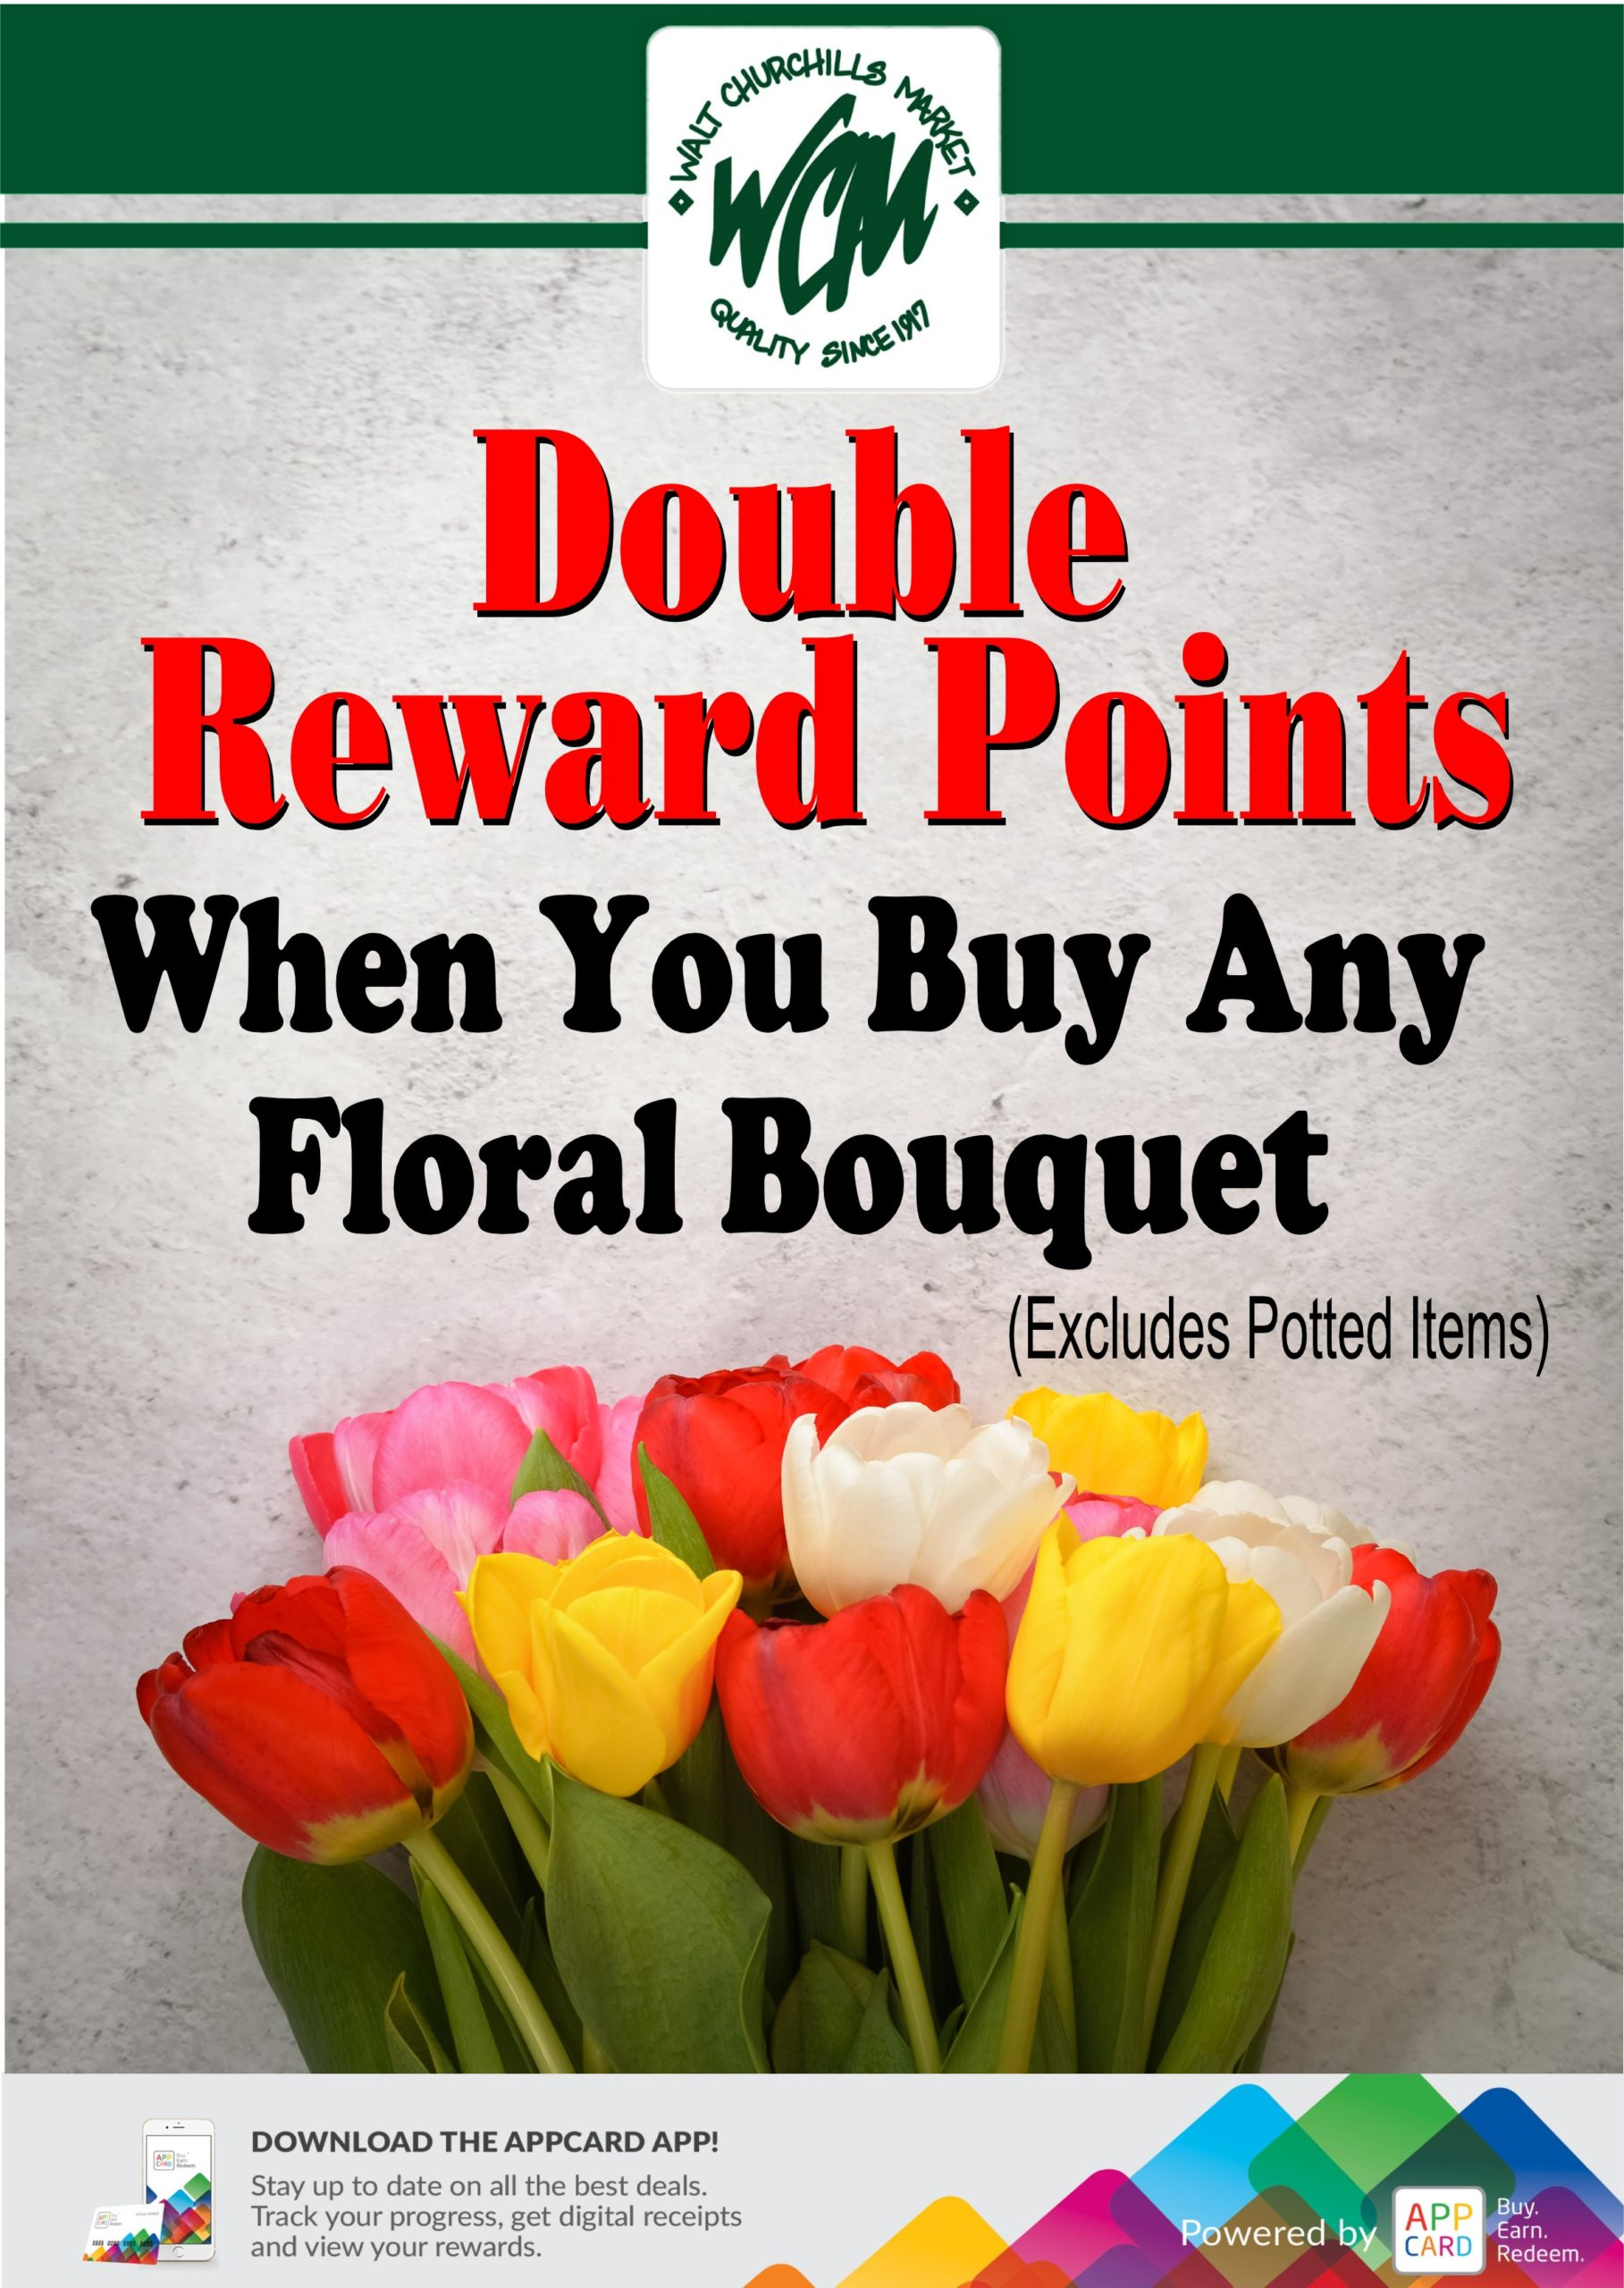 Double Reward Points when you buy any floral boquet